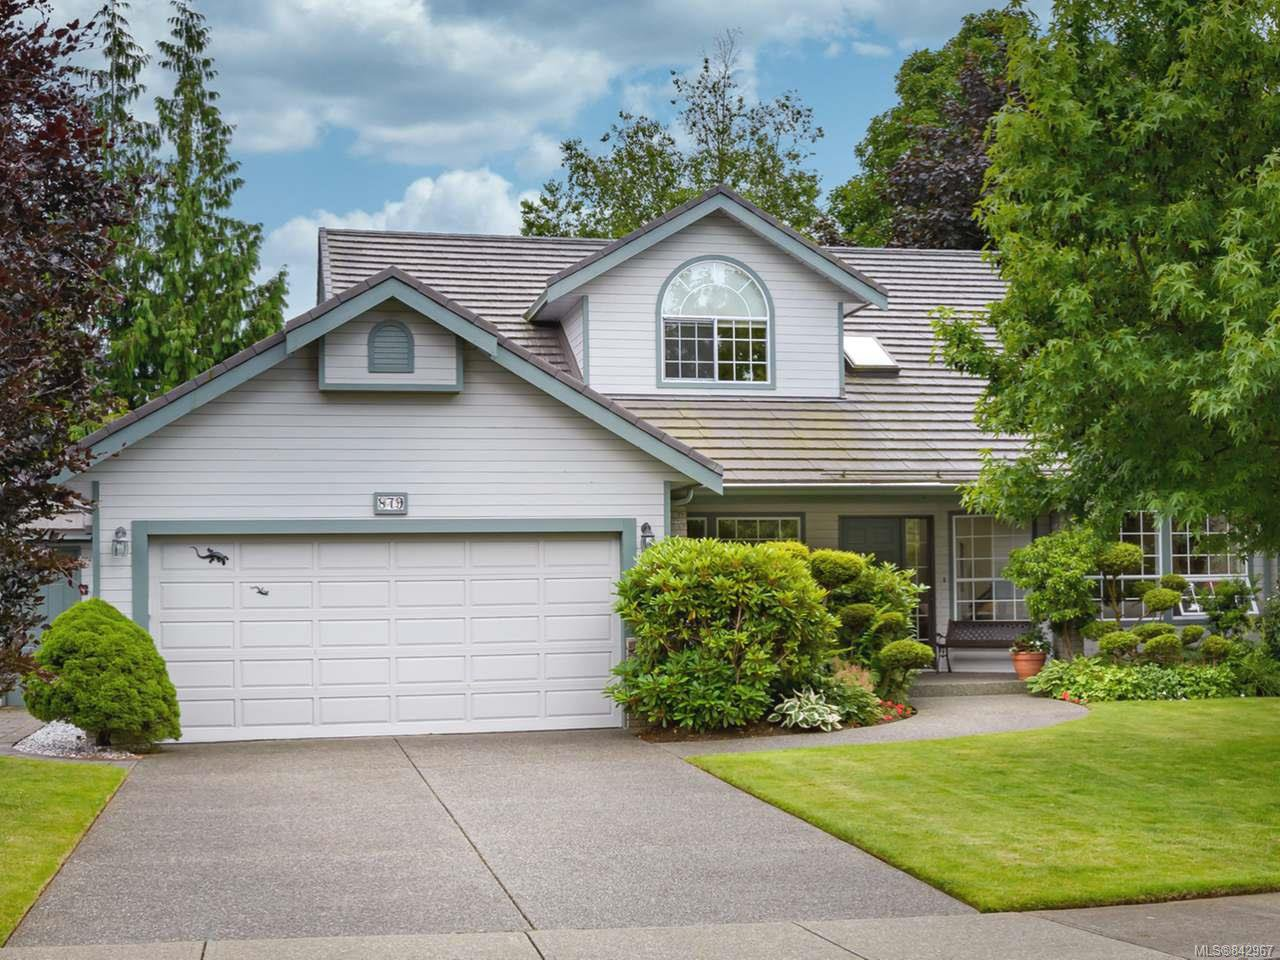 Main Photo: 879 Eastwicke Cres in COMOX: CV Comox (Town of) Single Family Detached for sale (Comox Valley)  : MLS®# 842967